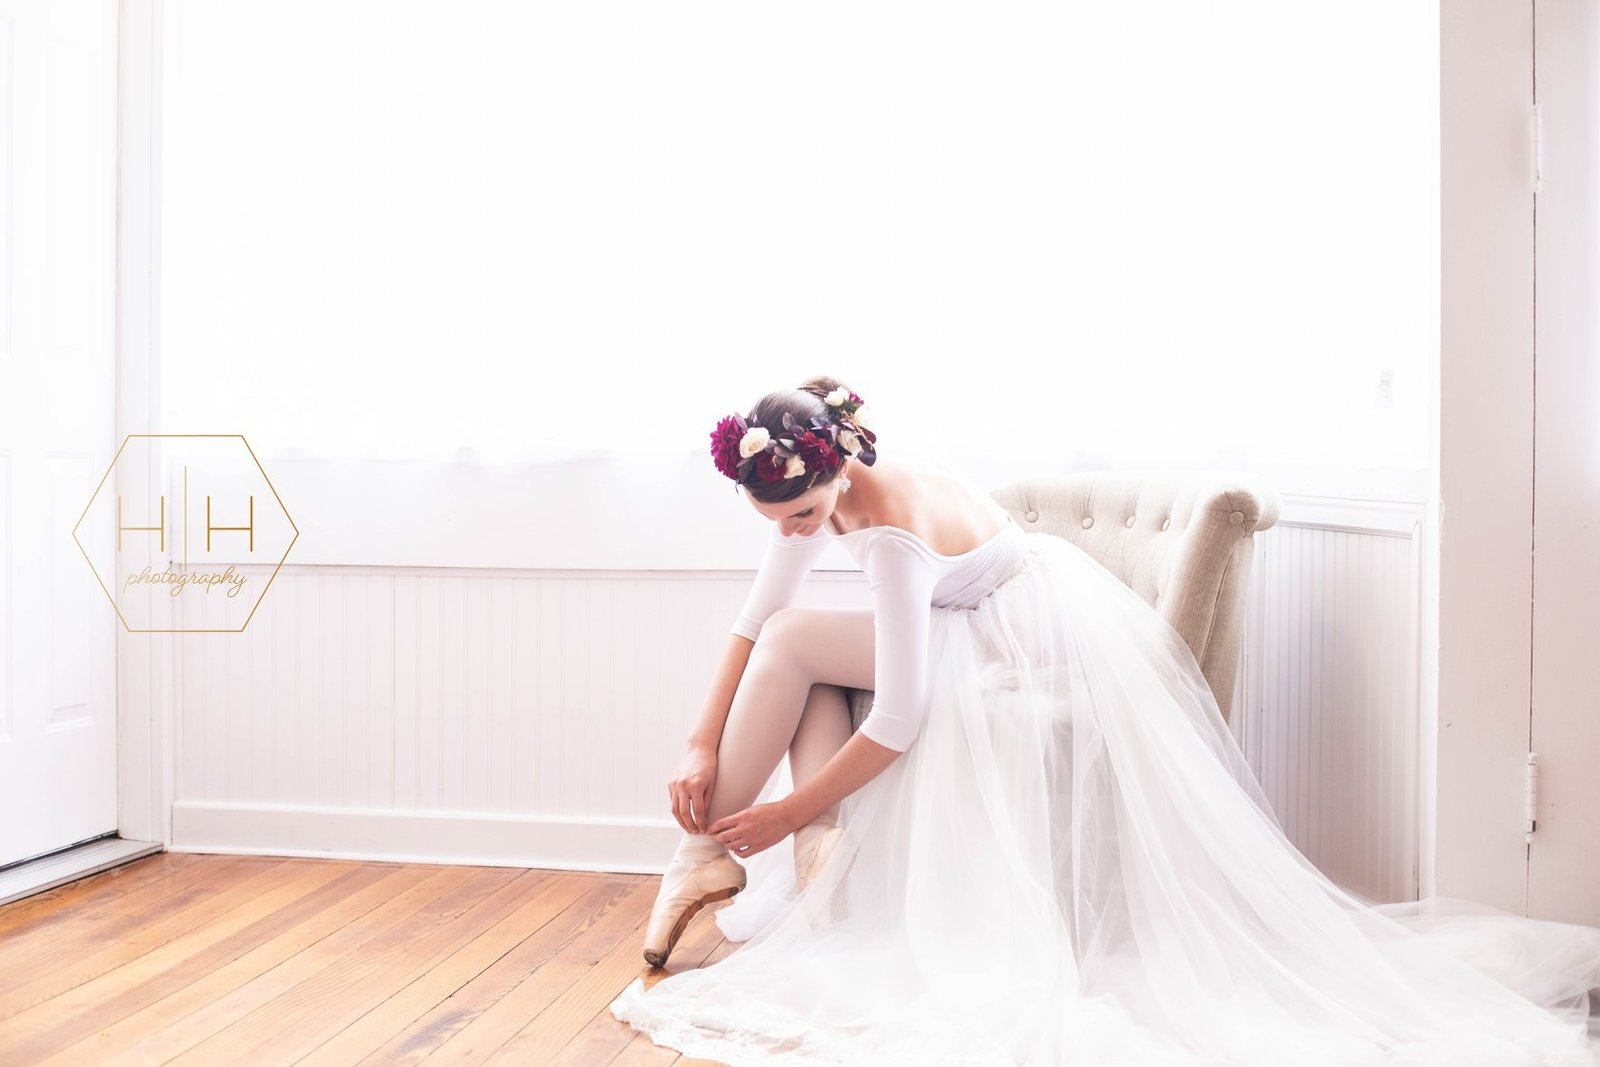 ballerina fixing her pointe shoes with a headwreath